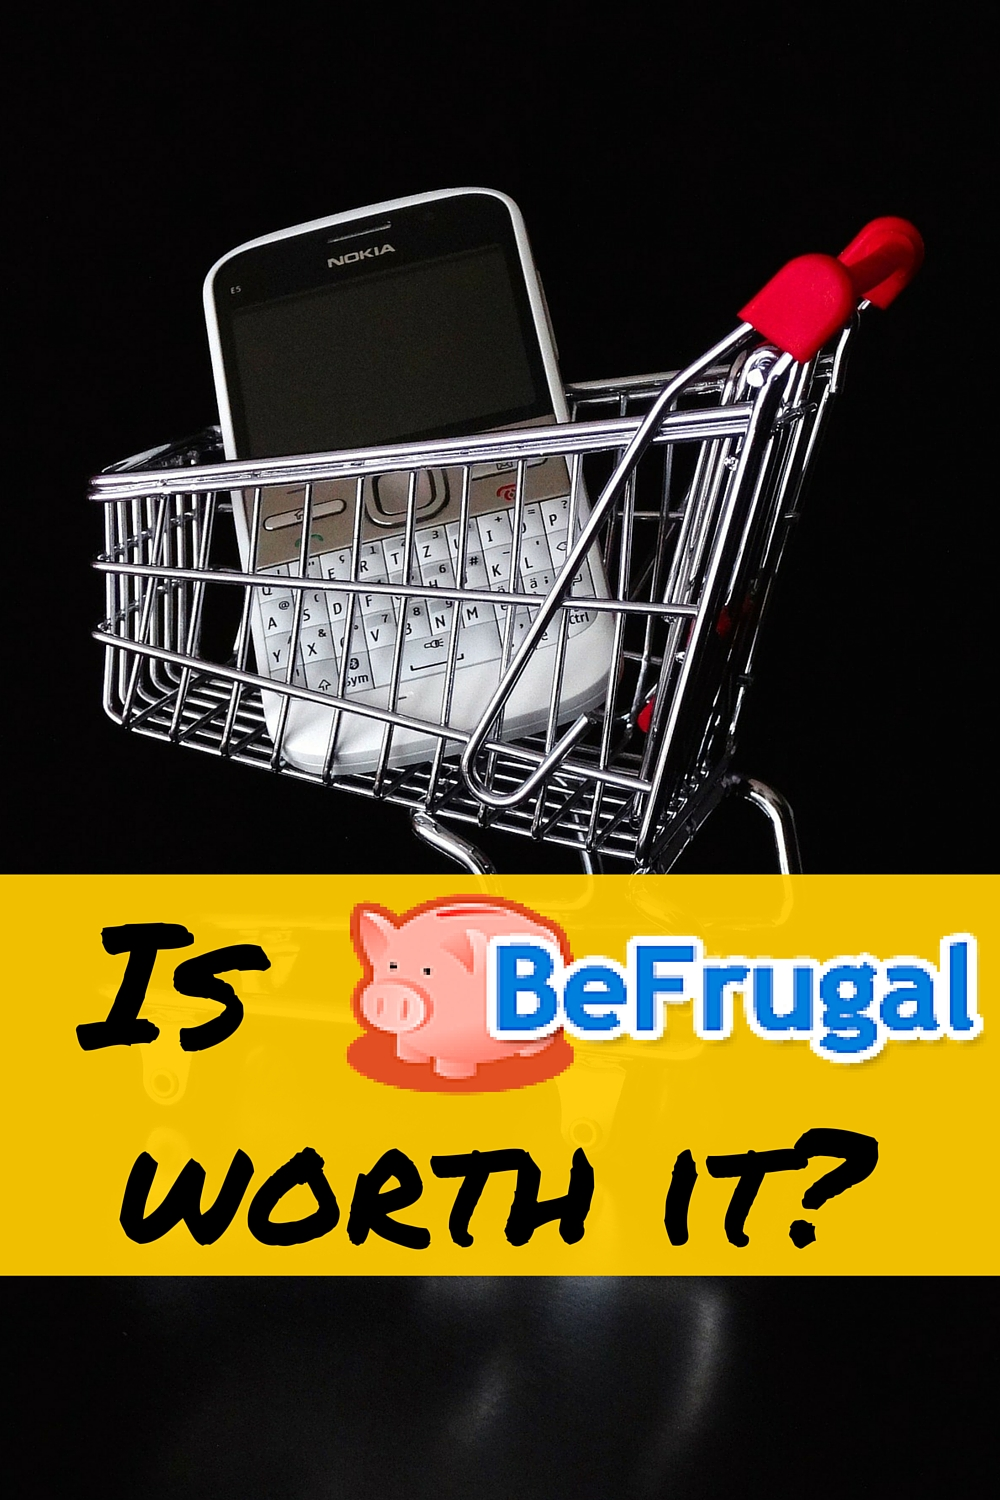 BeFrugal.com is a cash back shopping site that promises the most cash back. But is it worthwhile?